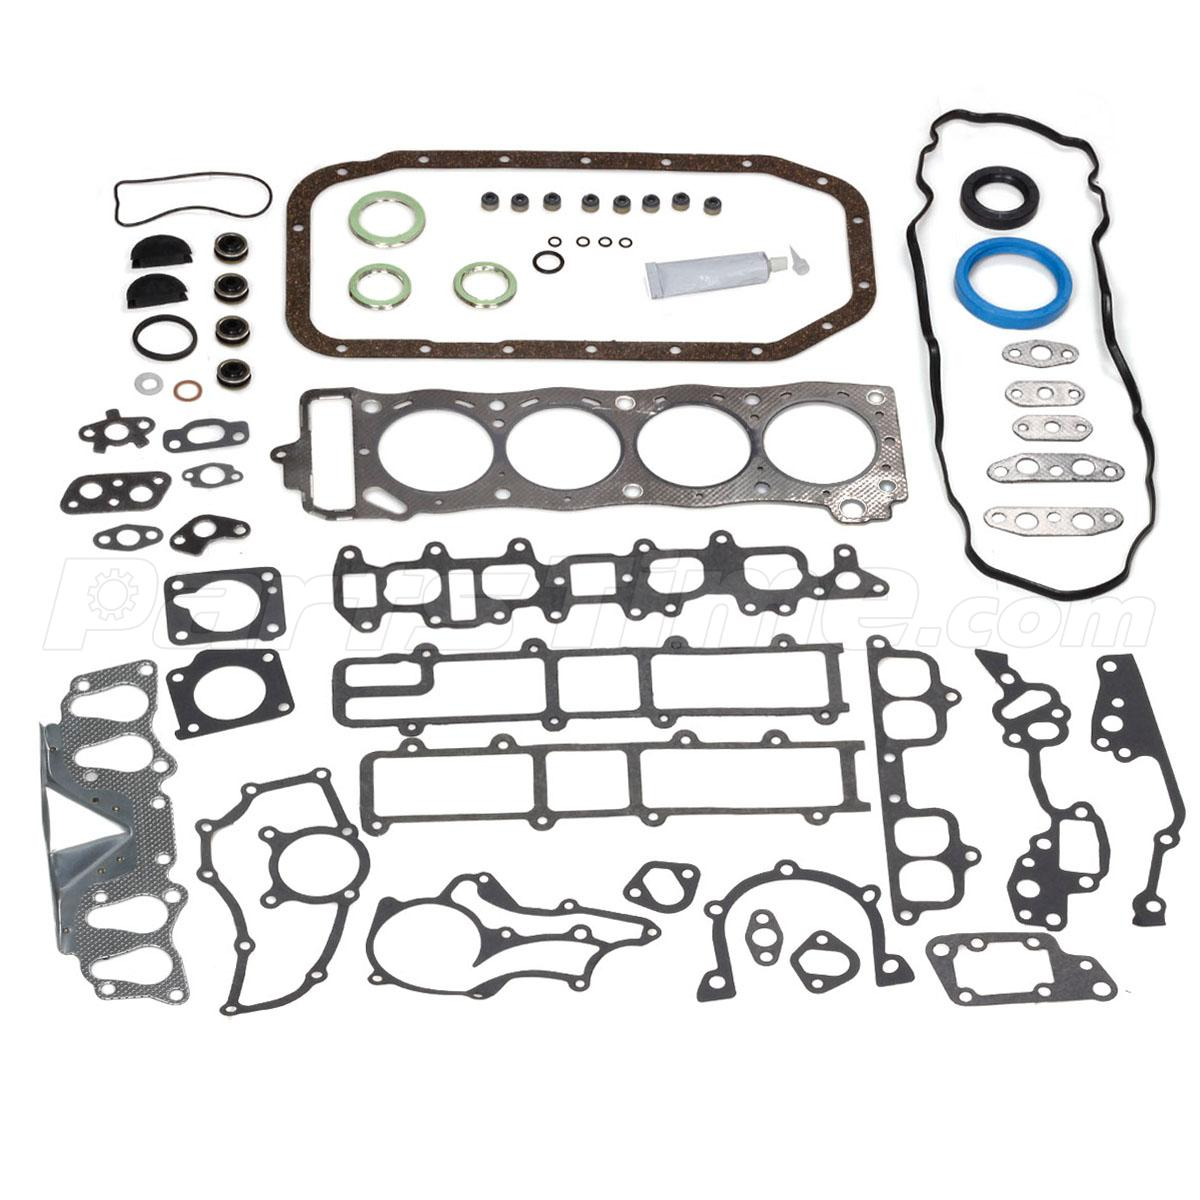 Cylinder Head Gasket For Toyota 4runner Pickup 22r 22re